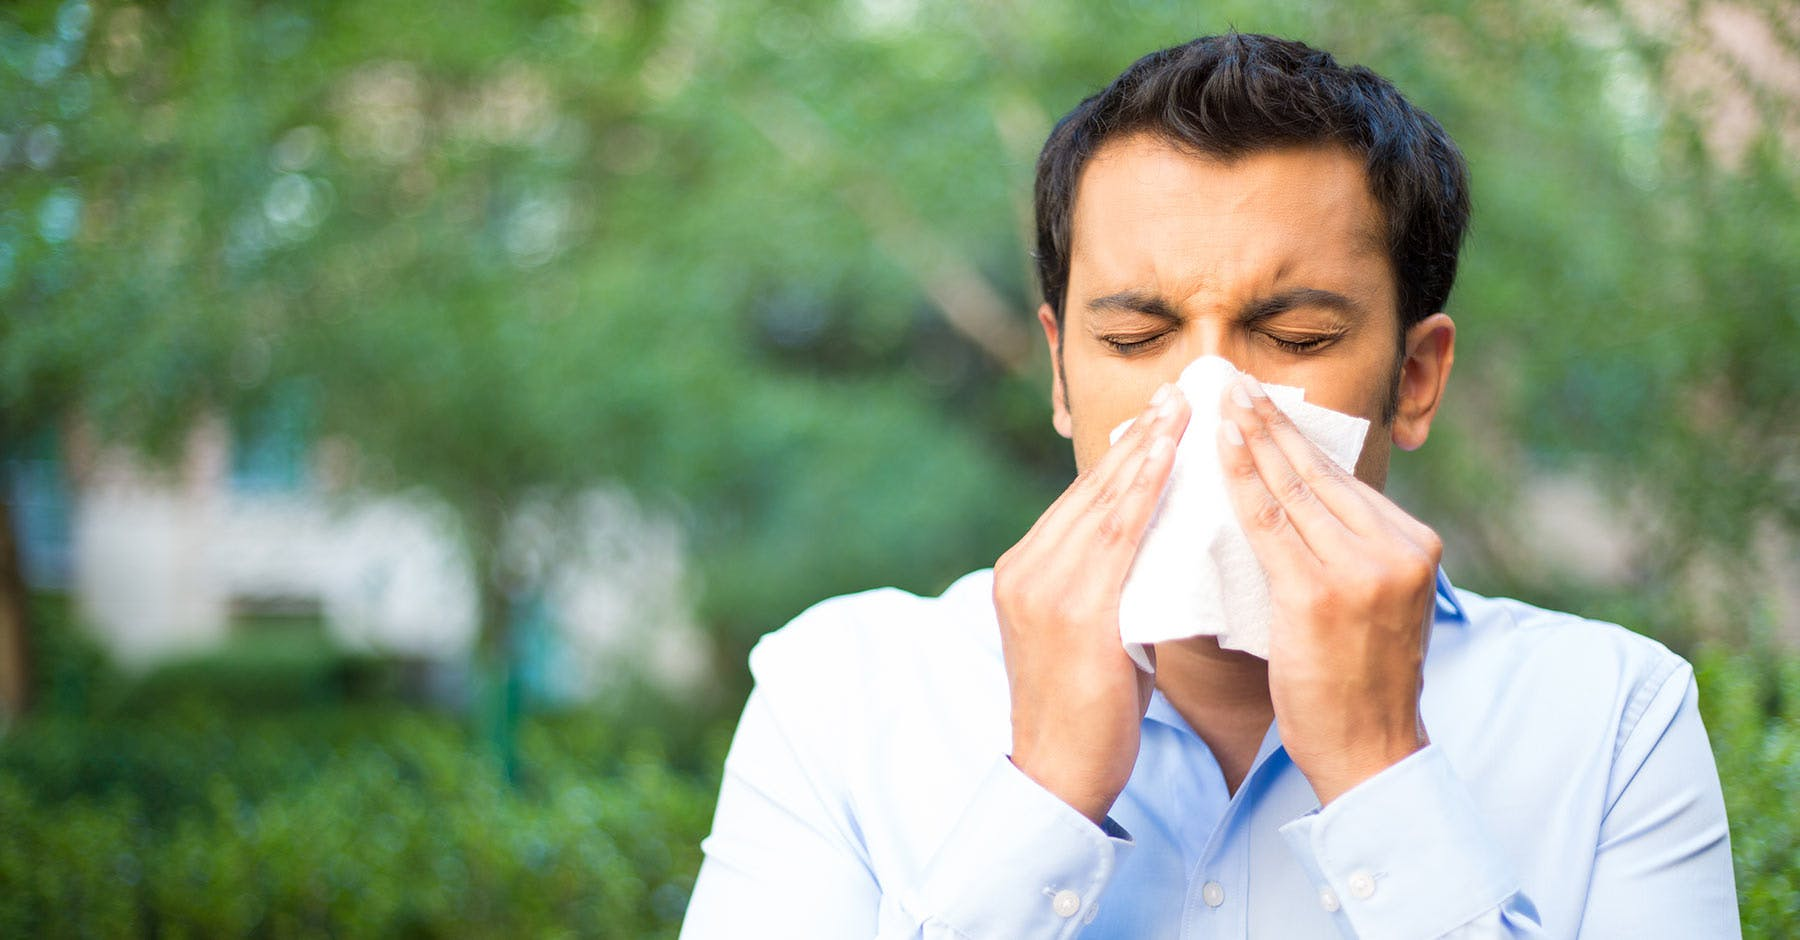 A black-haired man in a blue shirt is trying to blow his nose in a tissue